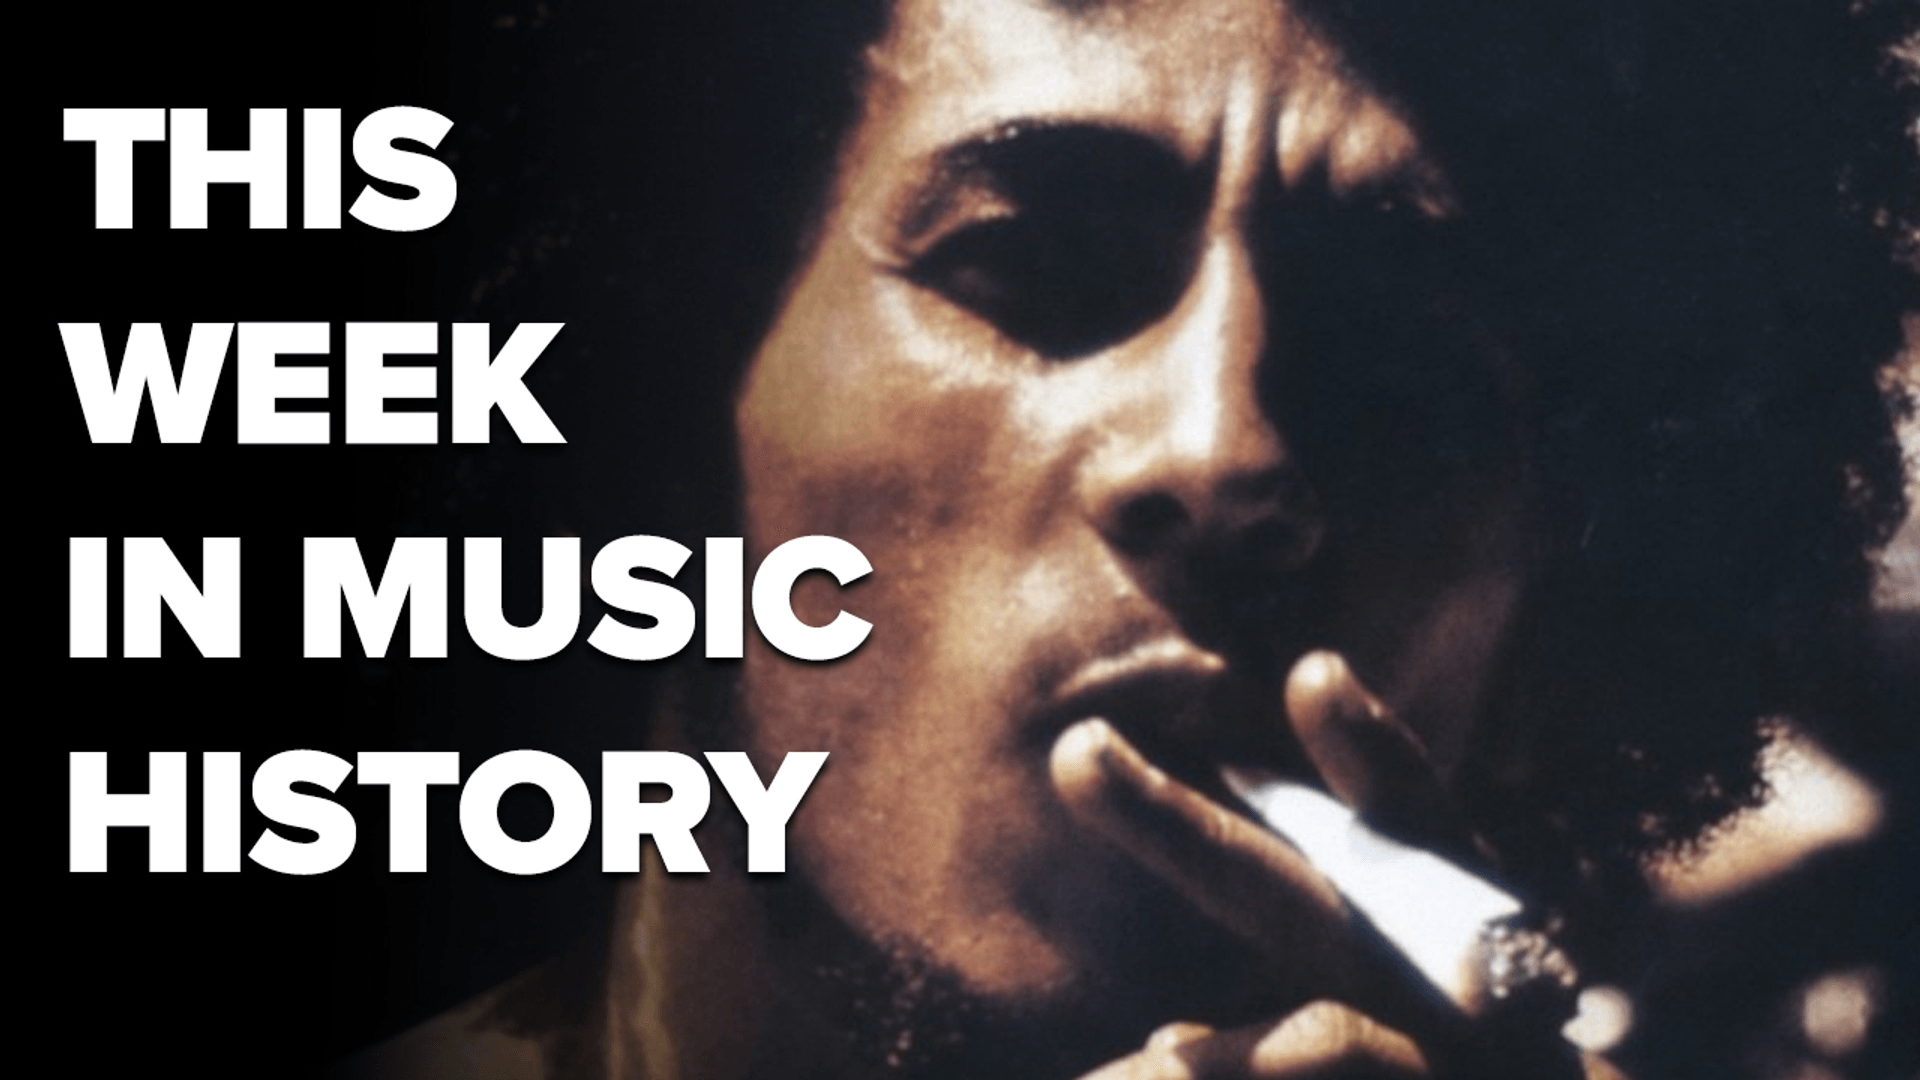 April 13 - 19 | This Week in Music History